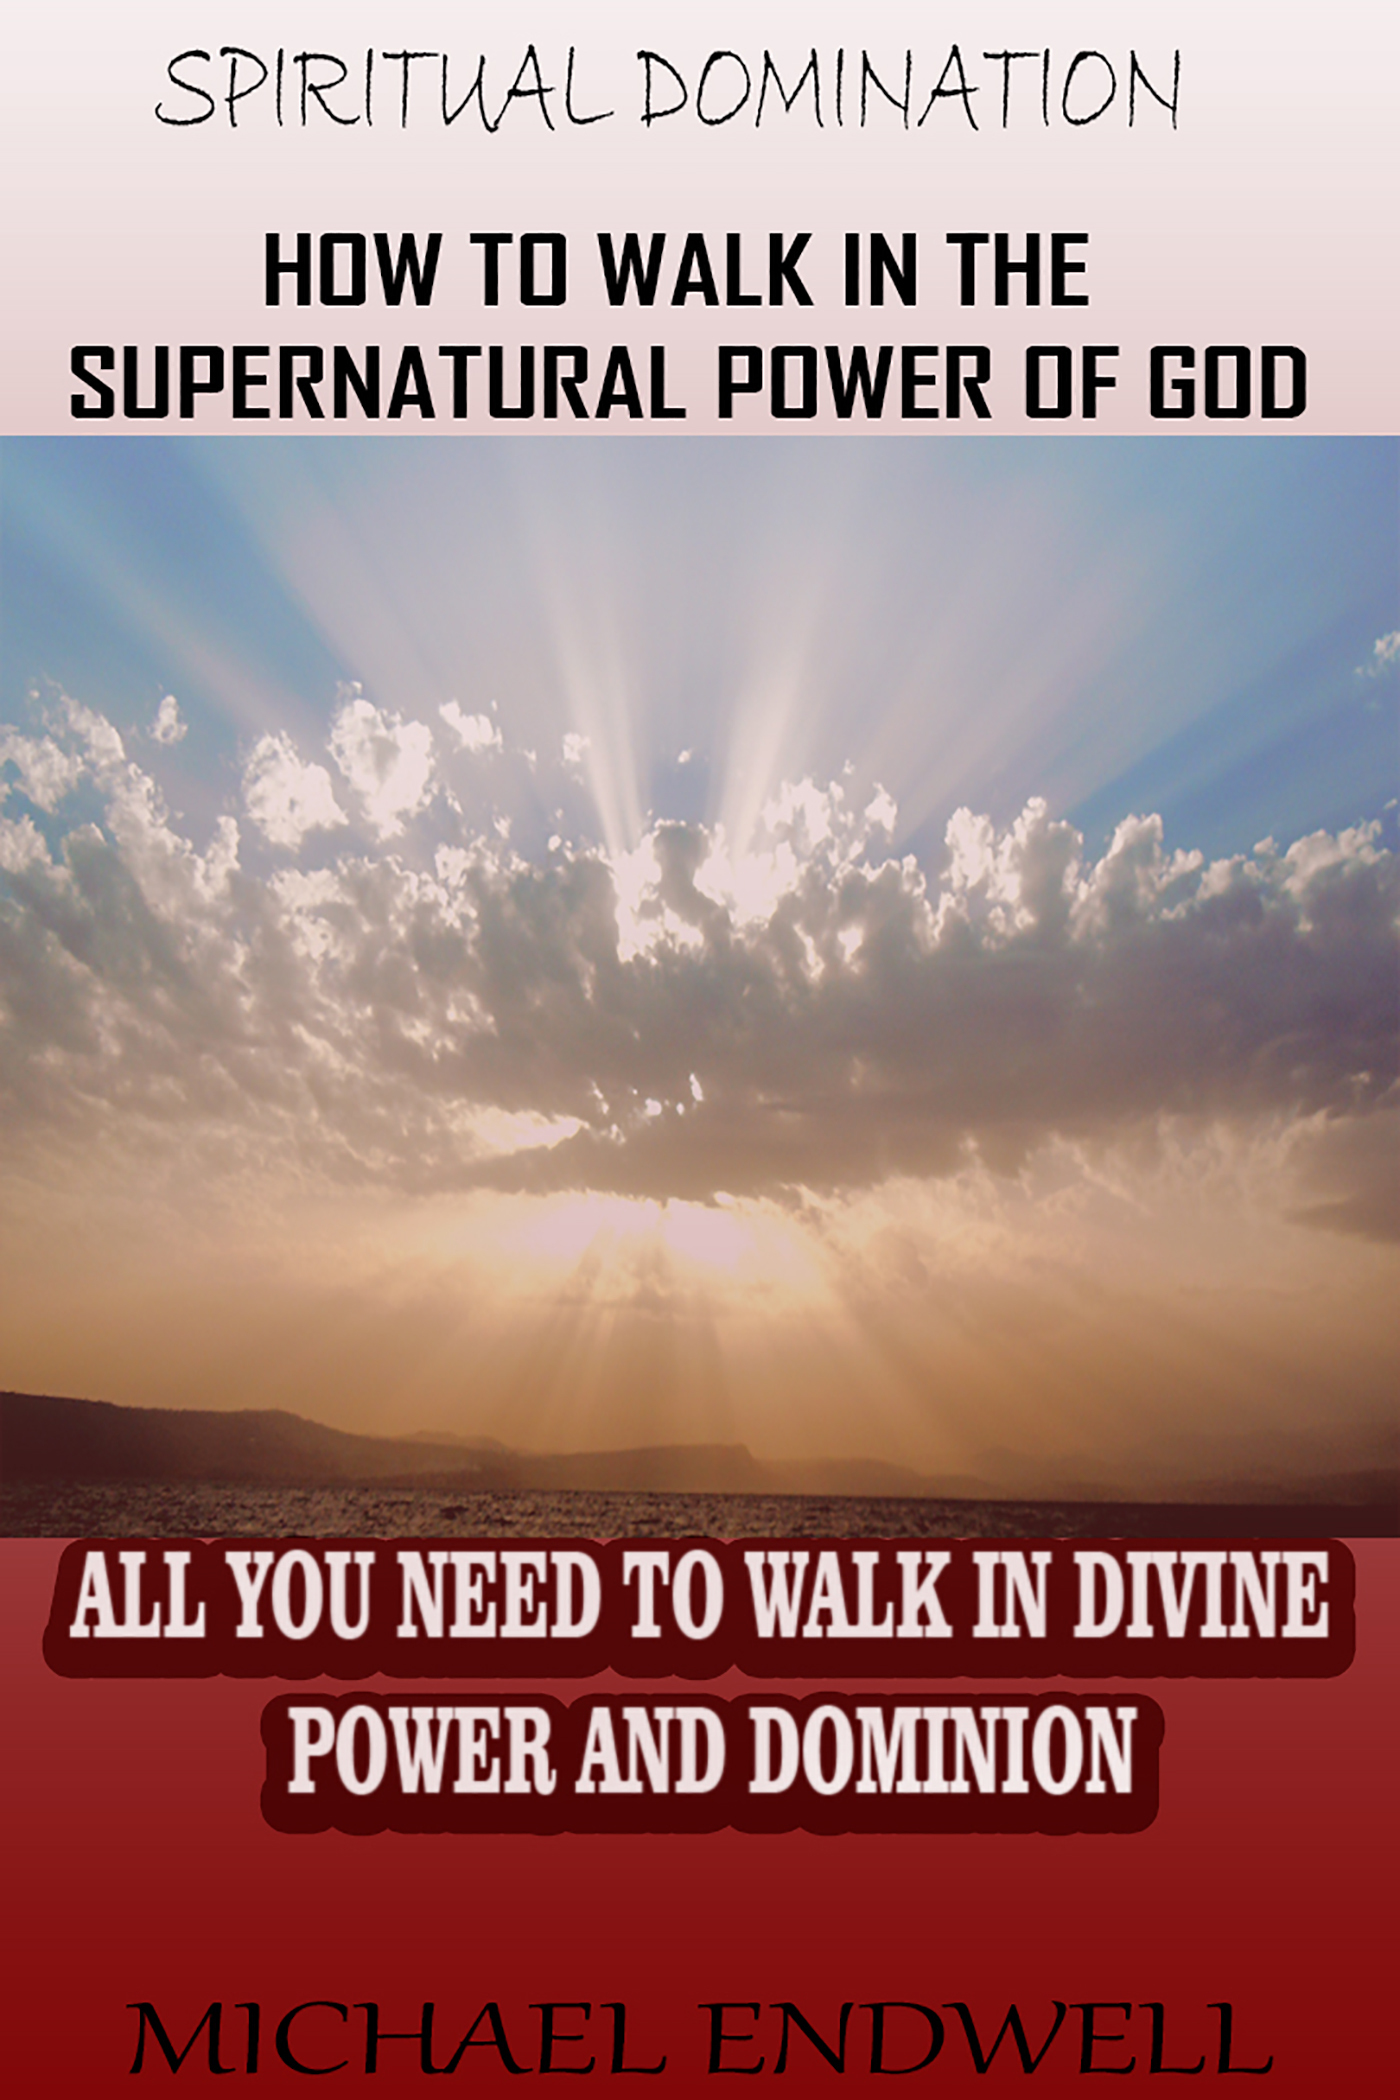 How to Walk In the Supernatural Power of God: All You Need To Walk In Divine Power and Dominion.